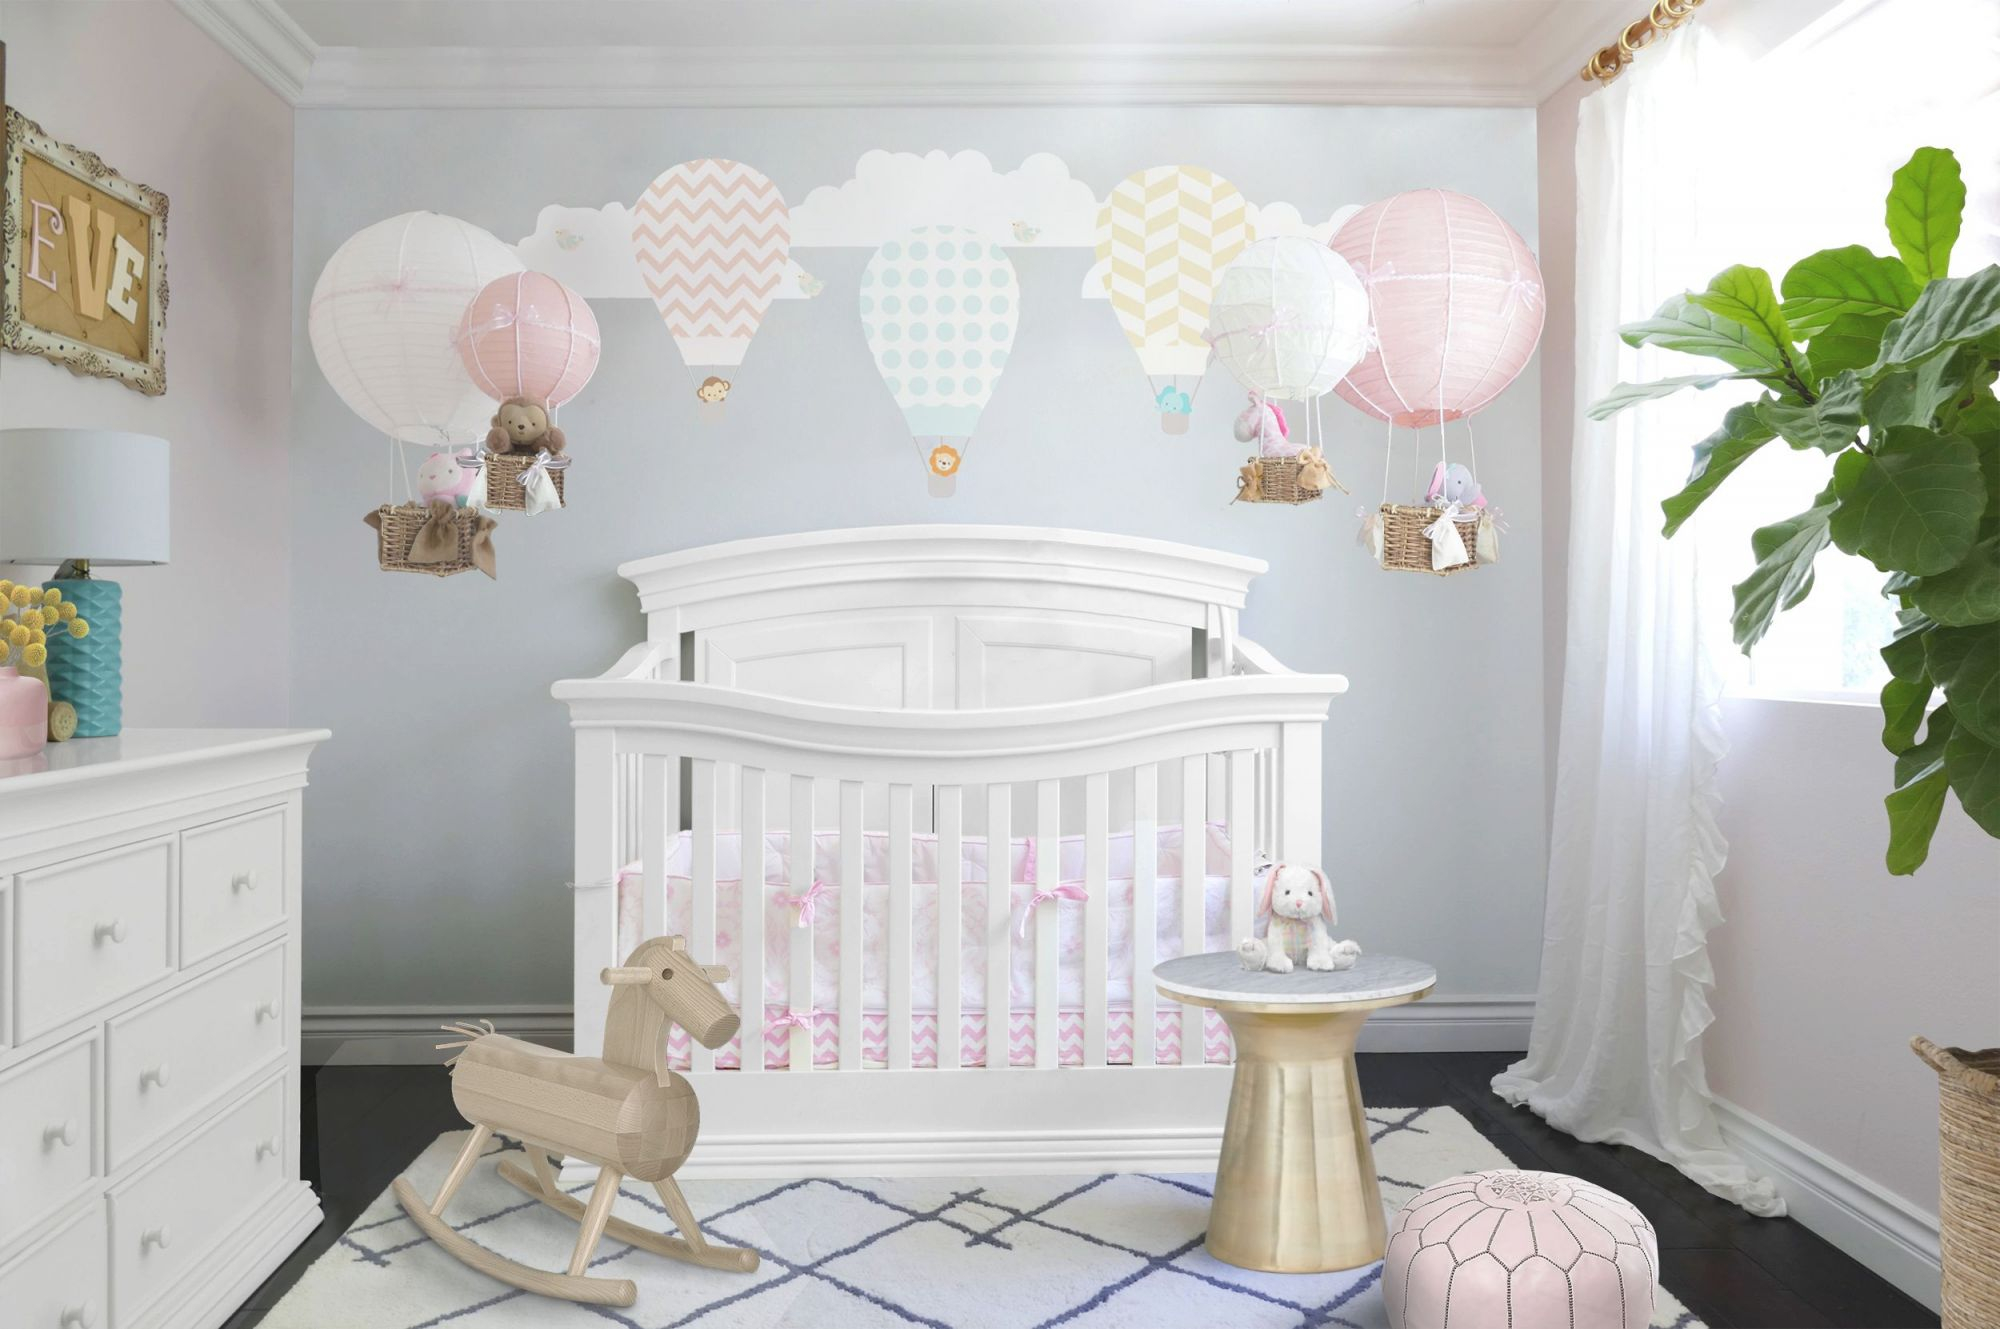 15 Girls' Room Ideas — Baby, Toddler & Tween Girl Bedroom with Bedroom Decorating Ideas For Girls